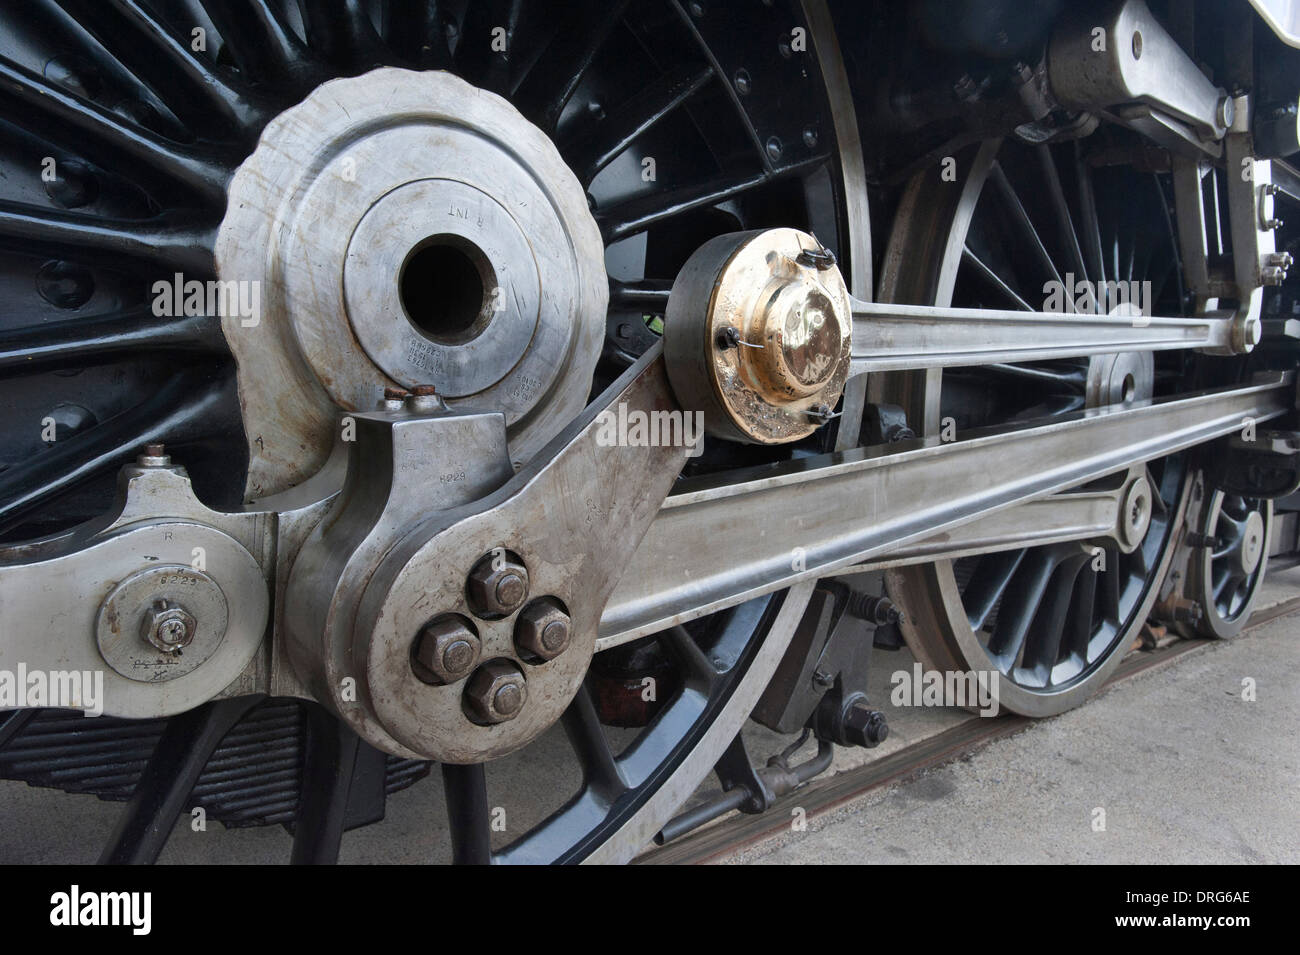 The Connecting Rods and the Driving Wheels of London, Midland Scottish Railways (LMS) streamlined 'Princess Coronation' preserved Steam Locomotive Number 6229 'Duchess of Hamilton' - Stock Image